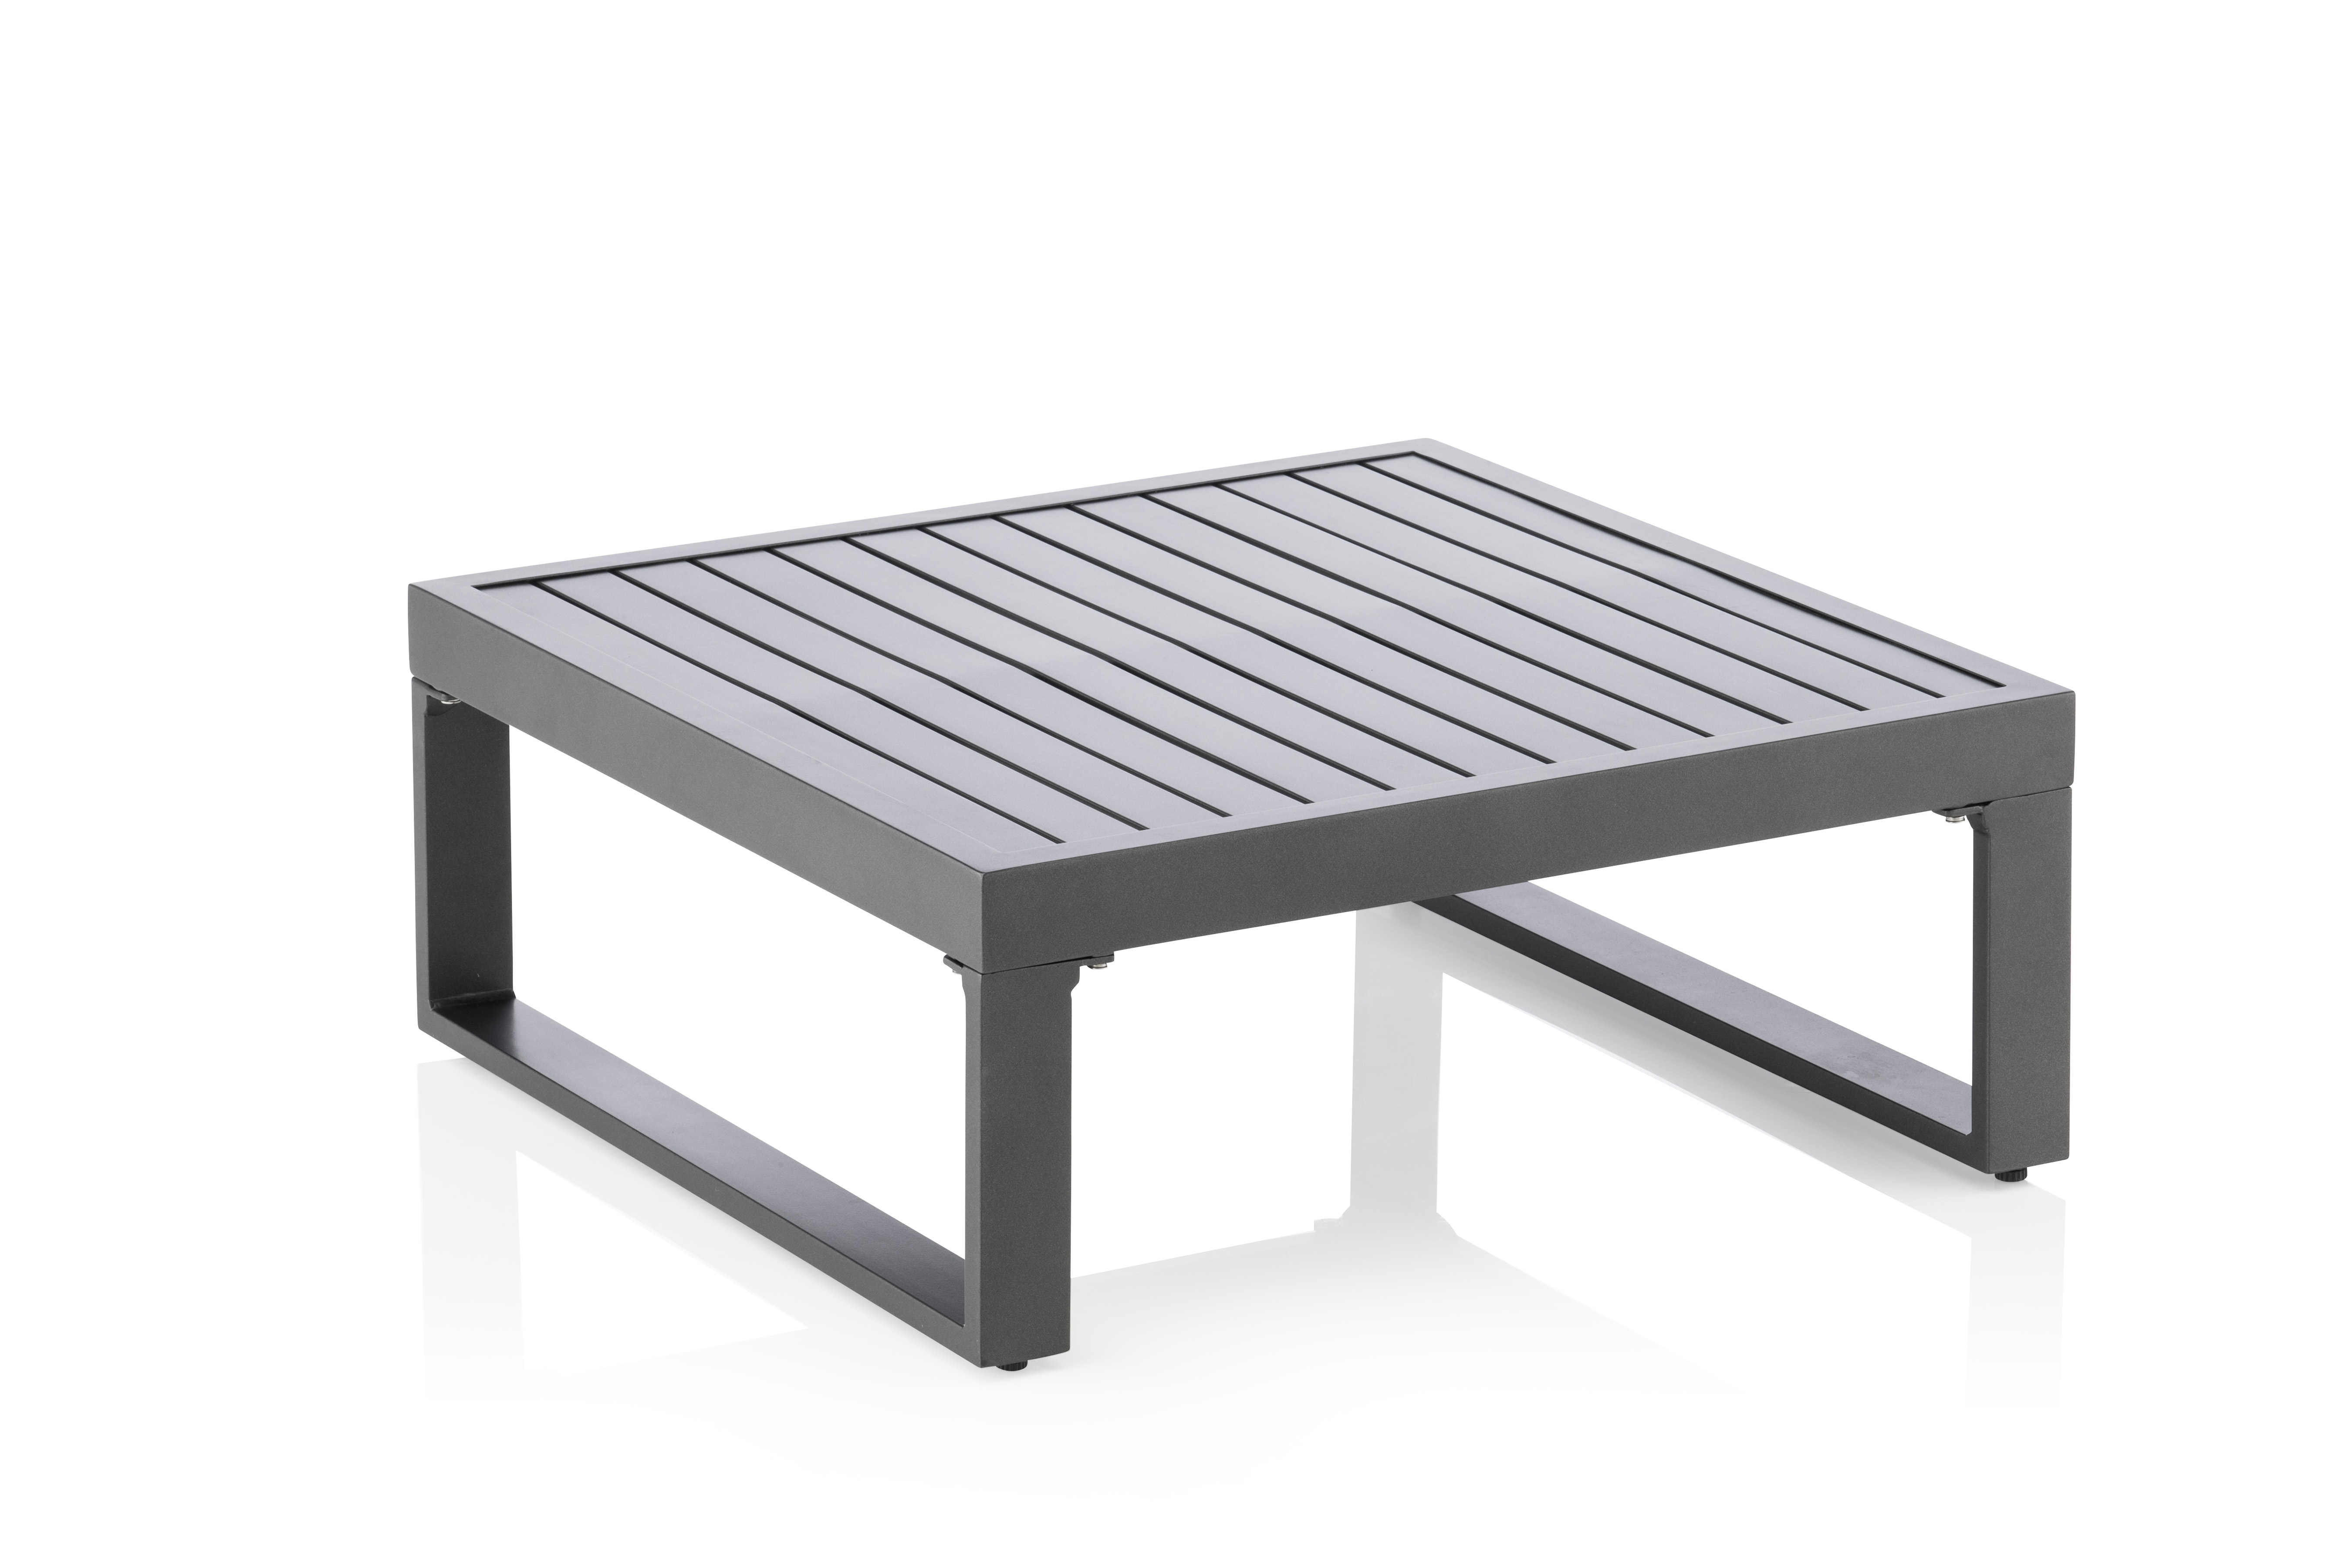 OCEAN MODULAIRE_ TABLE BASSE 75x75 ANTH_